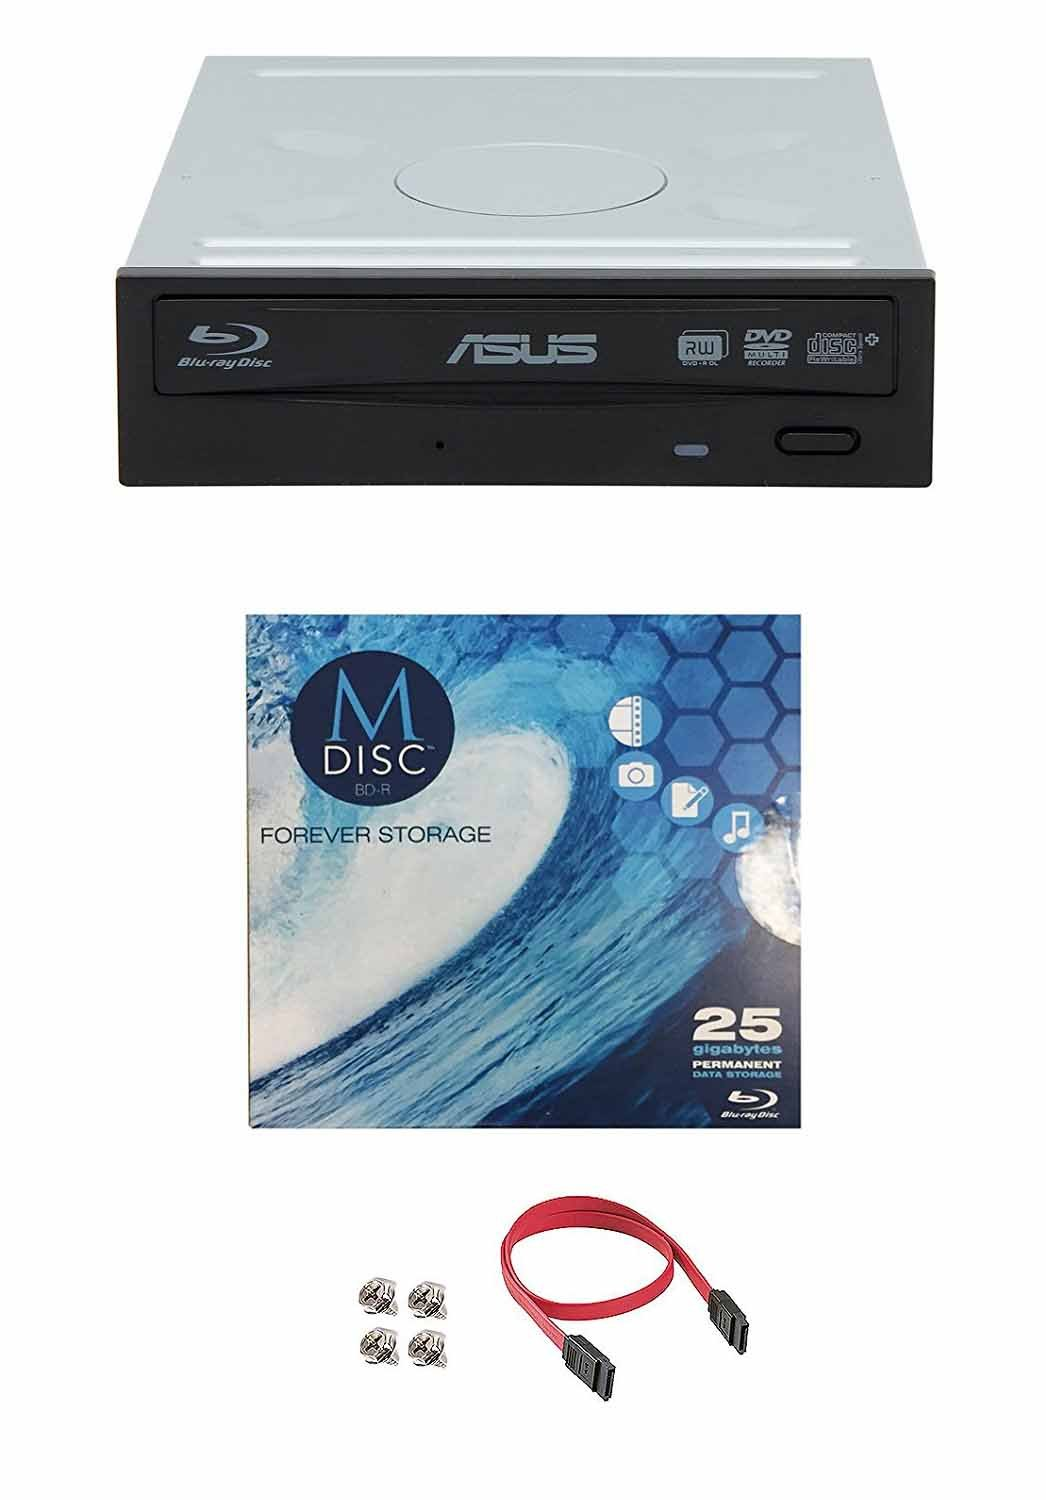 Cable Accessories and Mounting Screws Supports BDXL and M-DISC, Retail Box Asus 16x BW-16D1HT Internal Blu-Ray Burner Drive Bundle with 1 Pack M-DISC BD